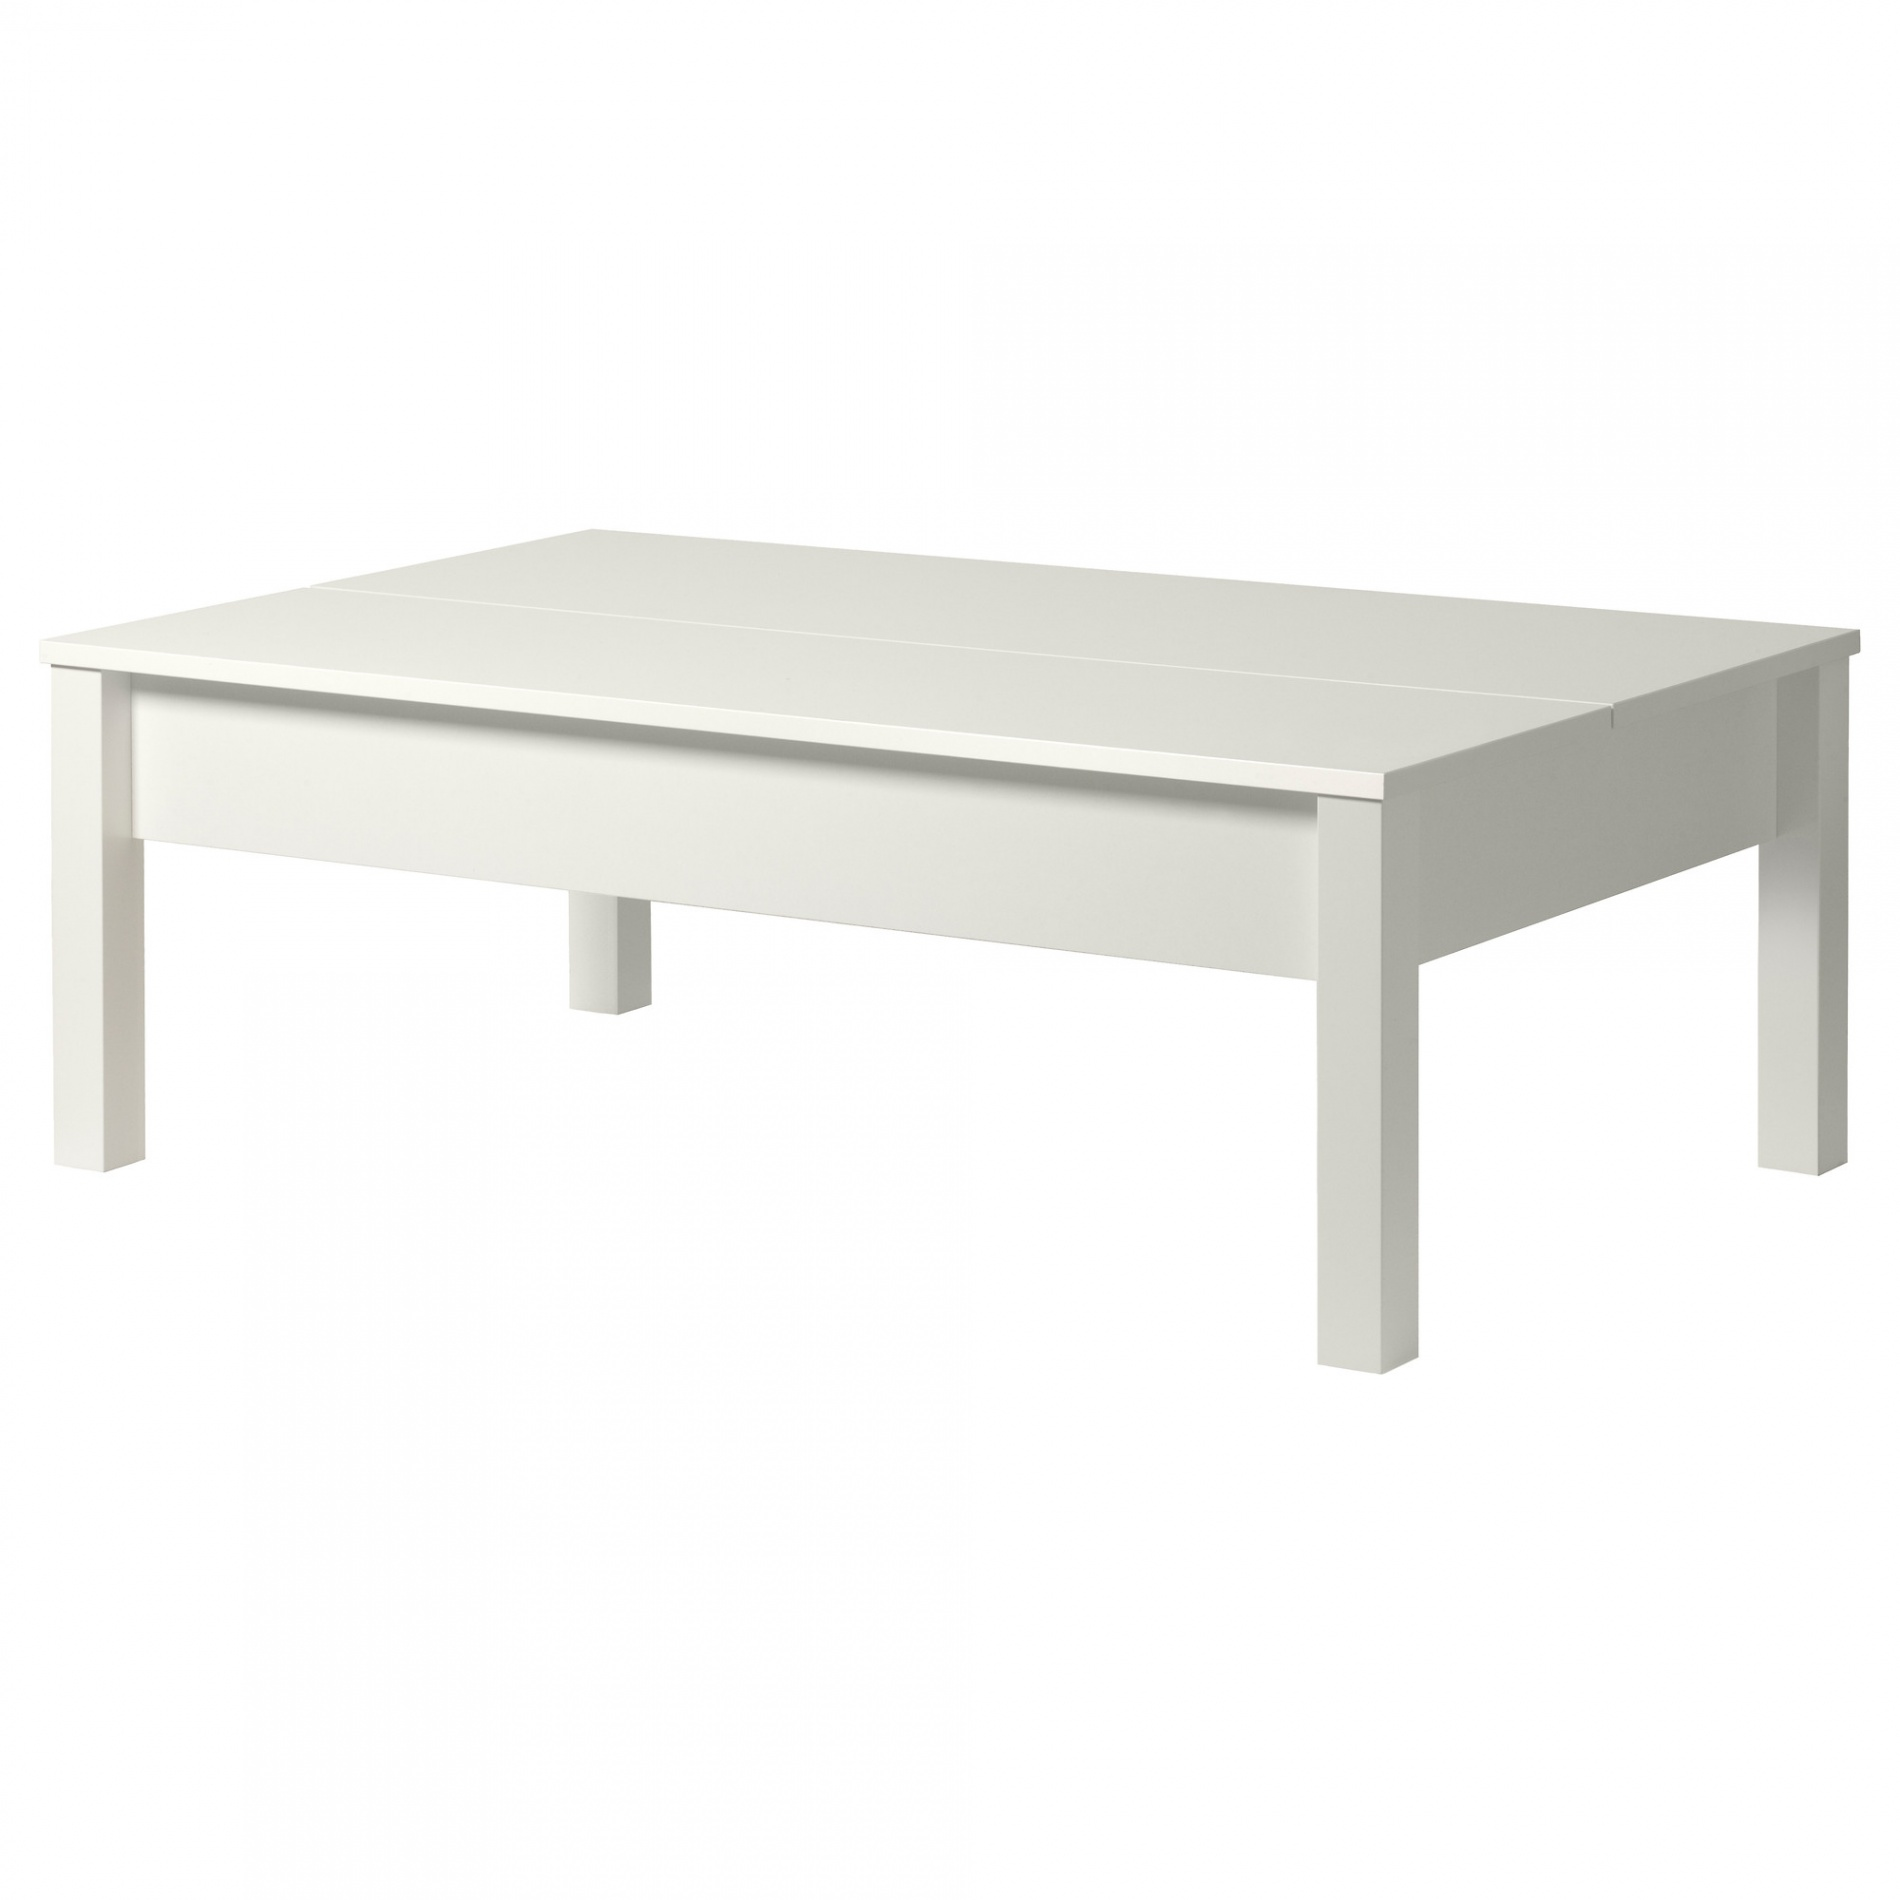 Table Carree Ikea Beautiful Table A Manger Blanche But Ideas Amazing House Design